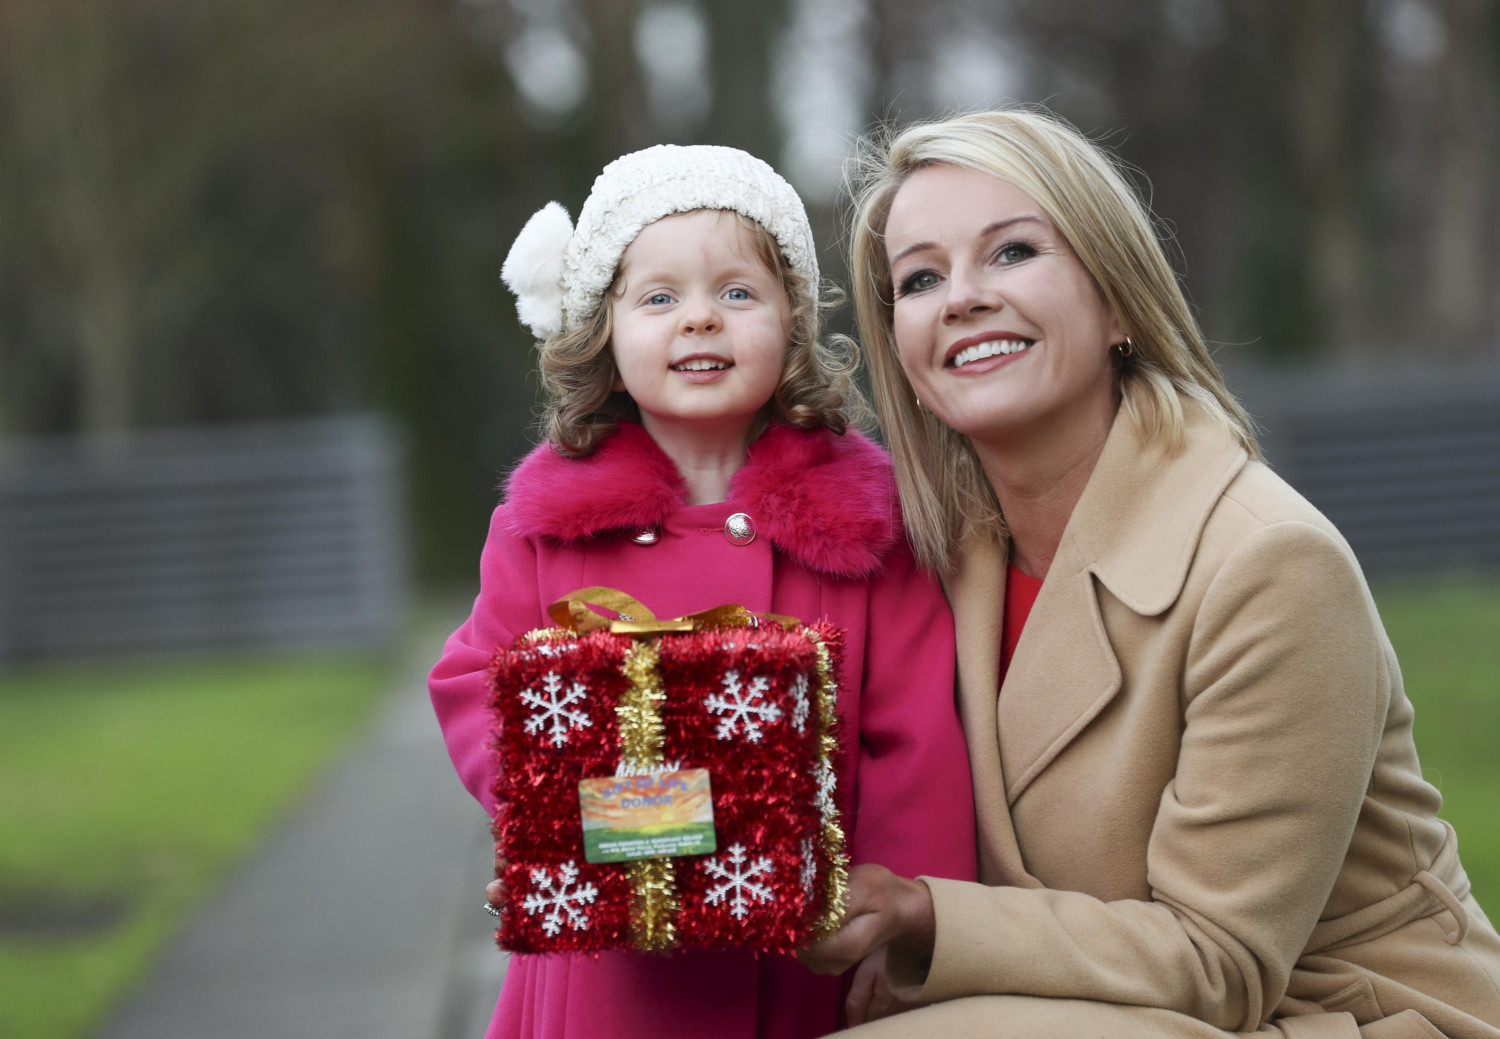 Sadhbh Browne took part in the IKAs Gift for Life Campaign at Christmas. Her lovely picture appeared in a lots of national newspapers. Well done Sadhbh.